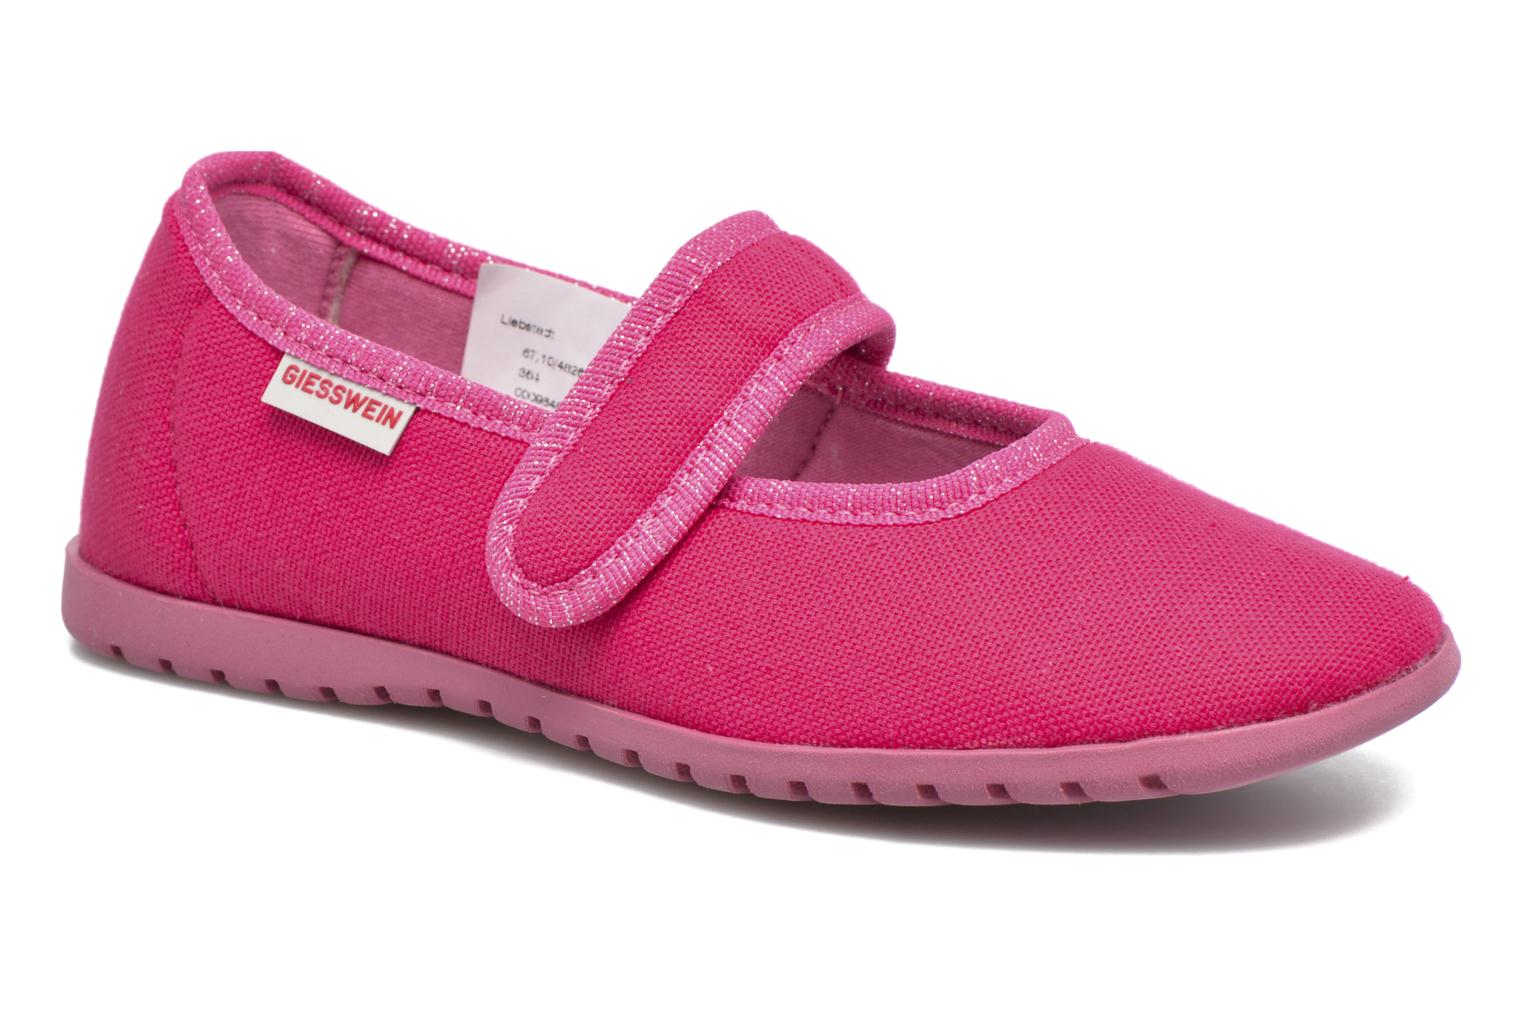 Chaussons Giesswein Liebsted Rose vue détail/paire